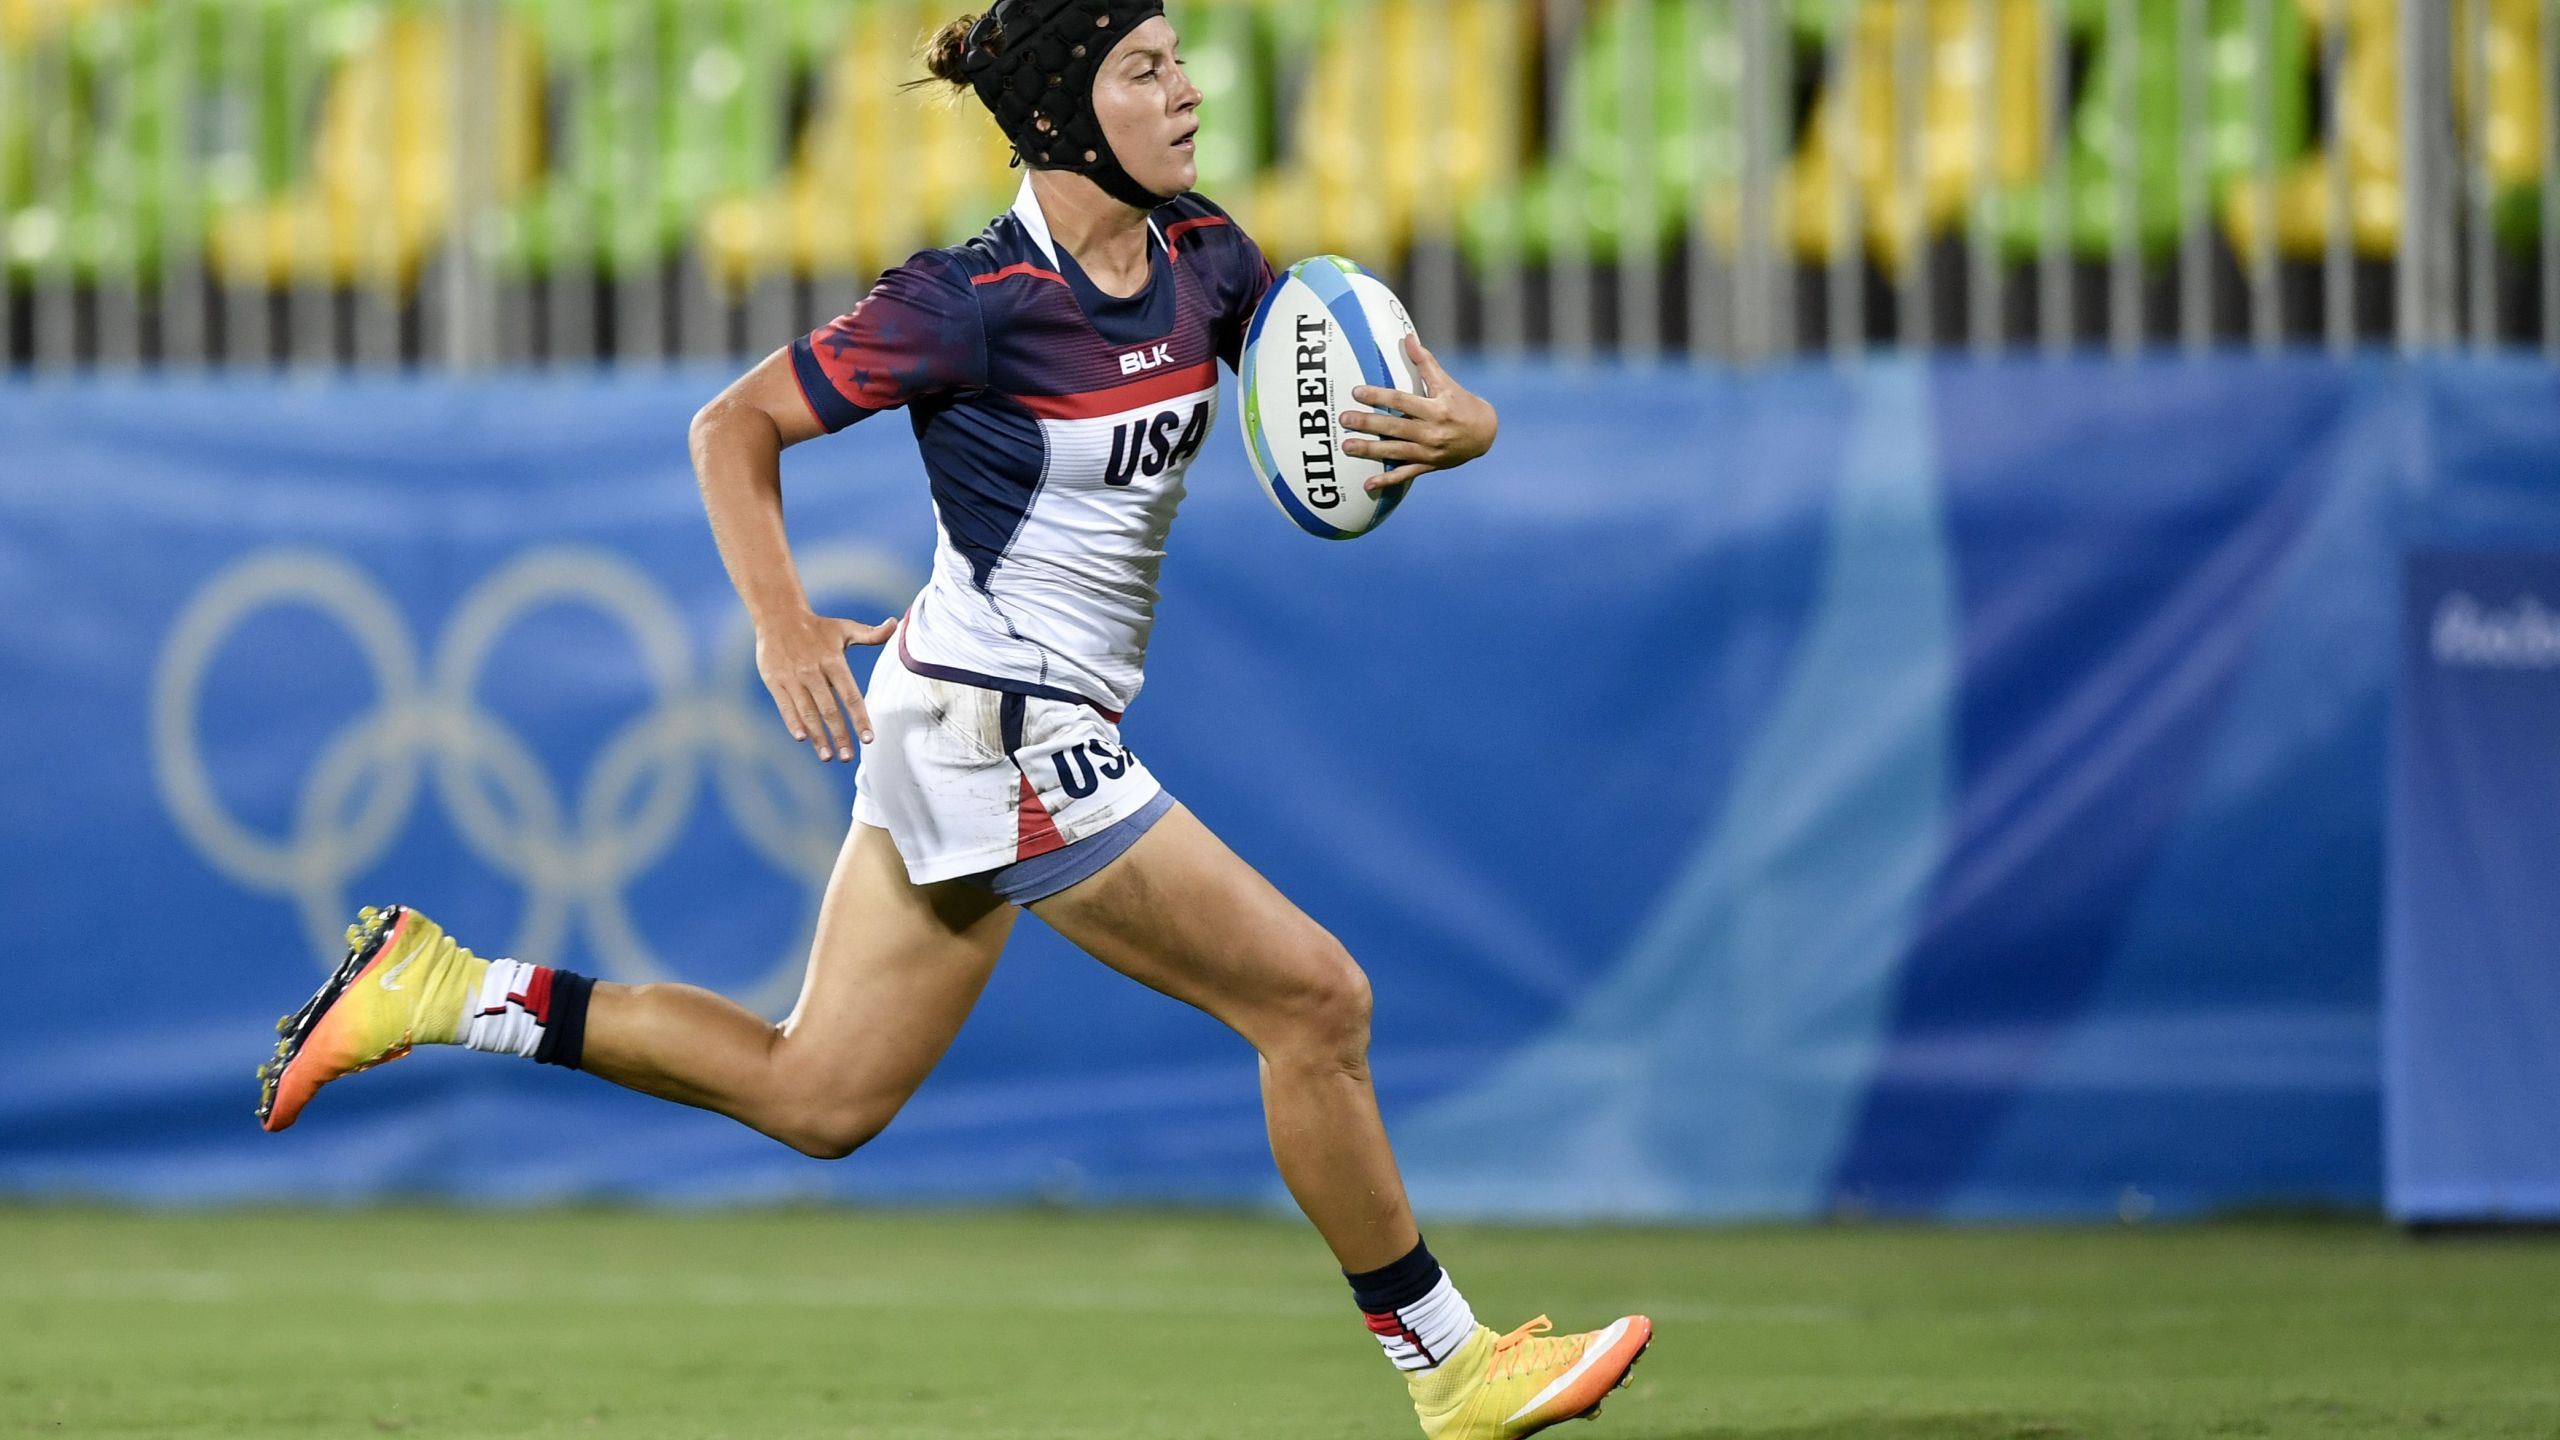 USA's Lauren Doyle scores a try in the womens rugby sevens match between Colombia and USA during the Rio 2016 Olympic Games at Deodoro Stadium in Rio de Janeiro on August 6, 2016. / AFP / PHILIPPE LOPEZ (Photo credit should read PHILIPPE LOPEZ/AFP via Getty Images)